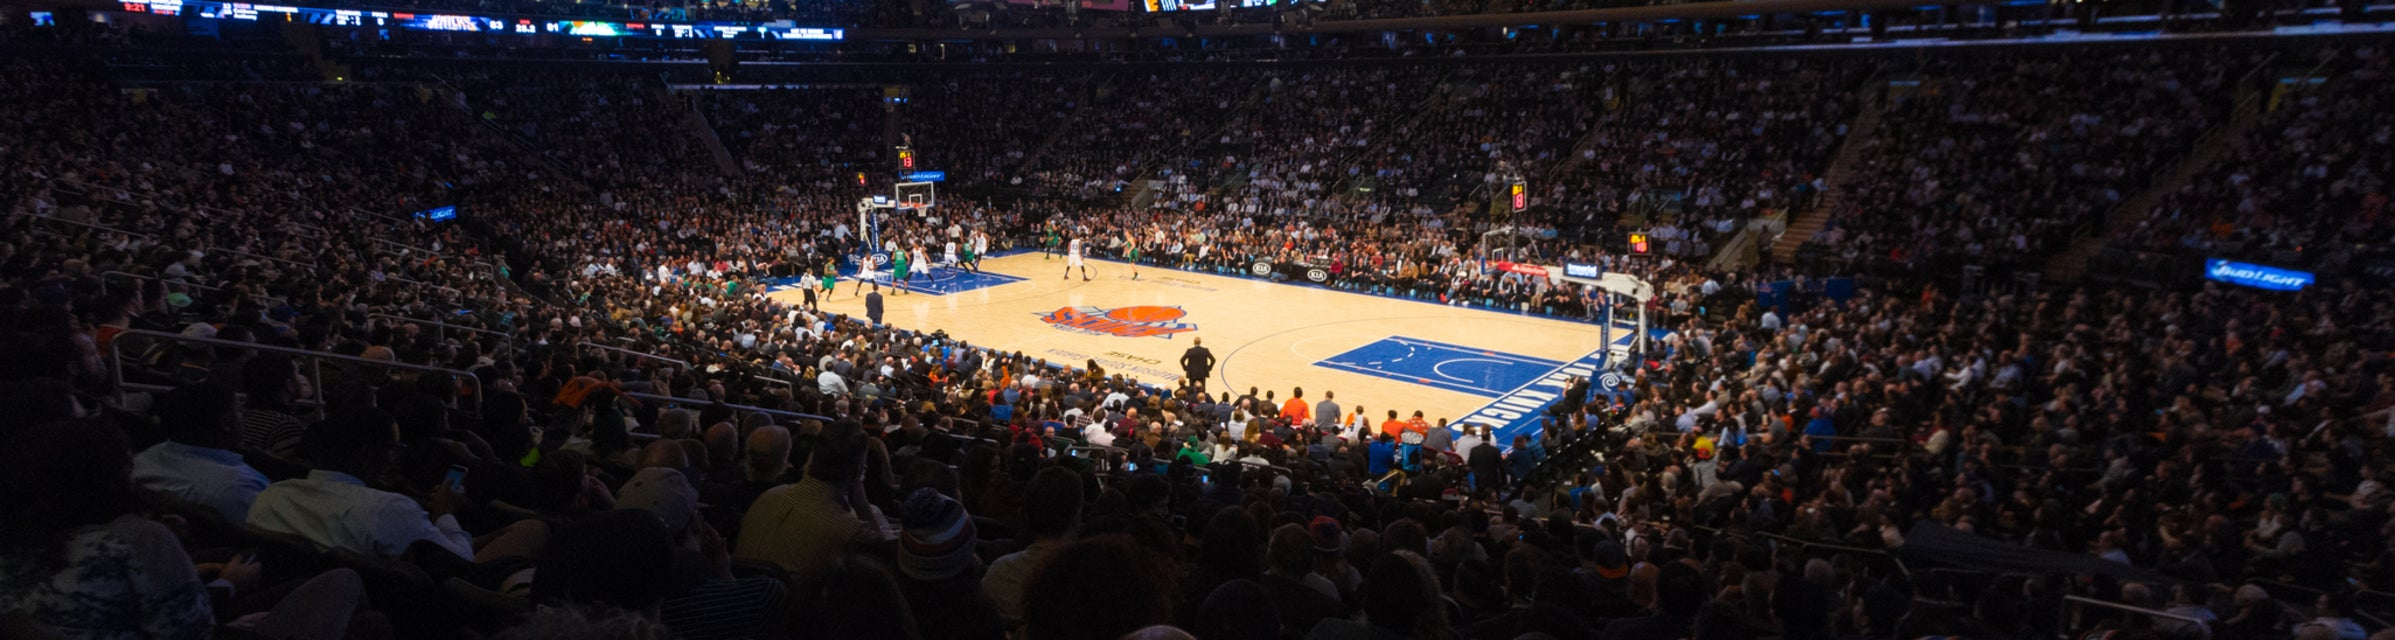 Jimmy V Classic Tickets